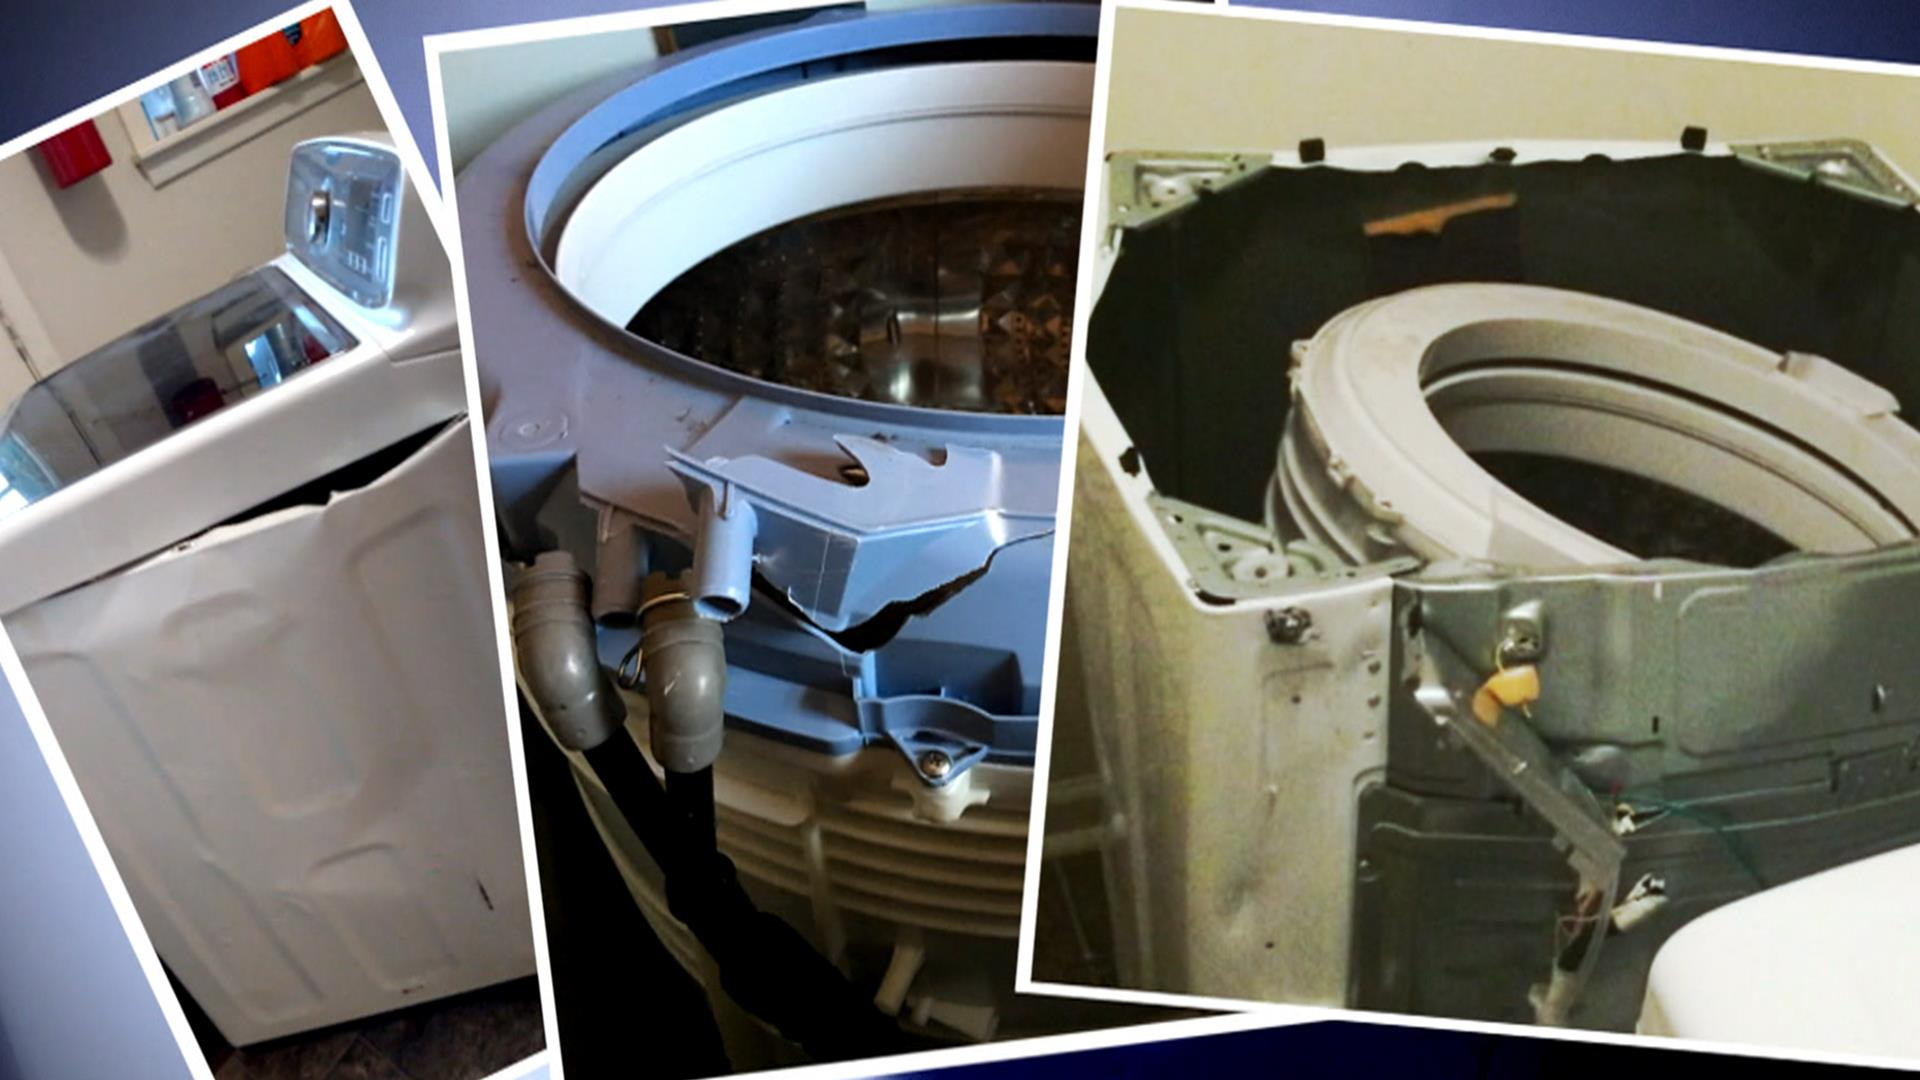 Consumers: Samsung washers still potentially dangerous after